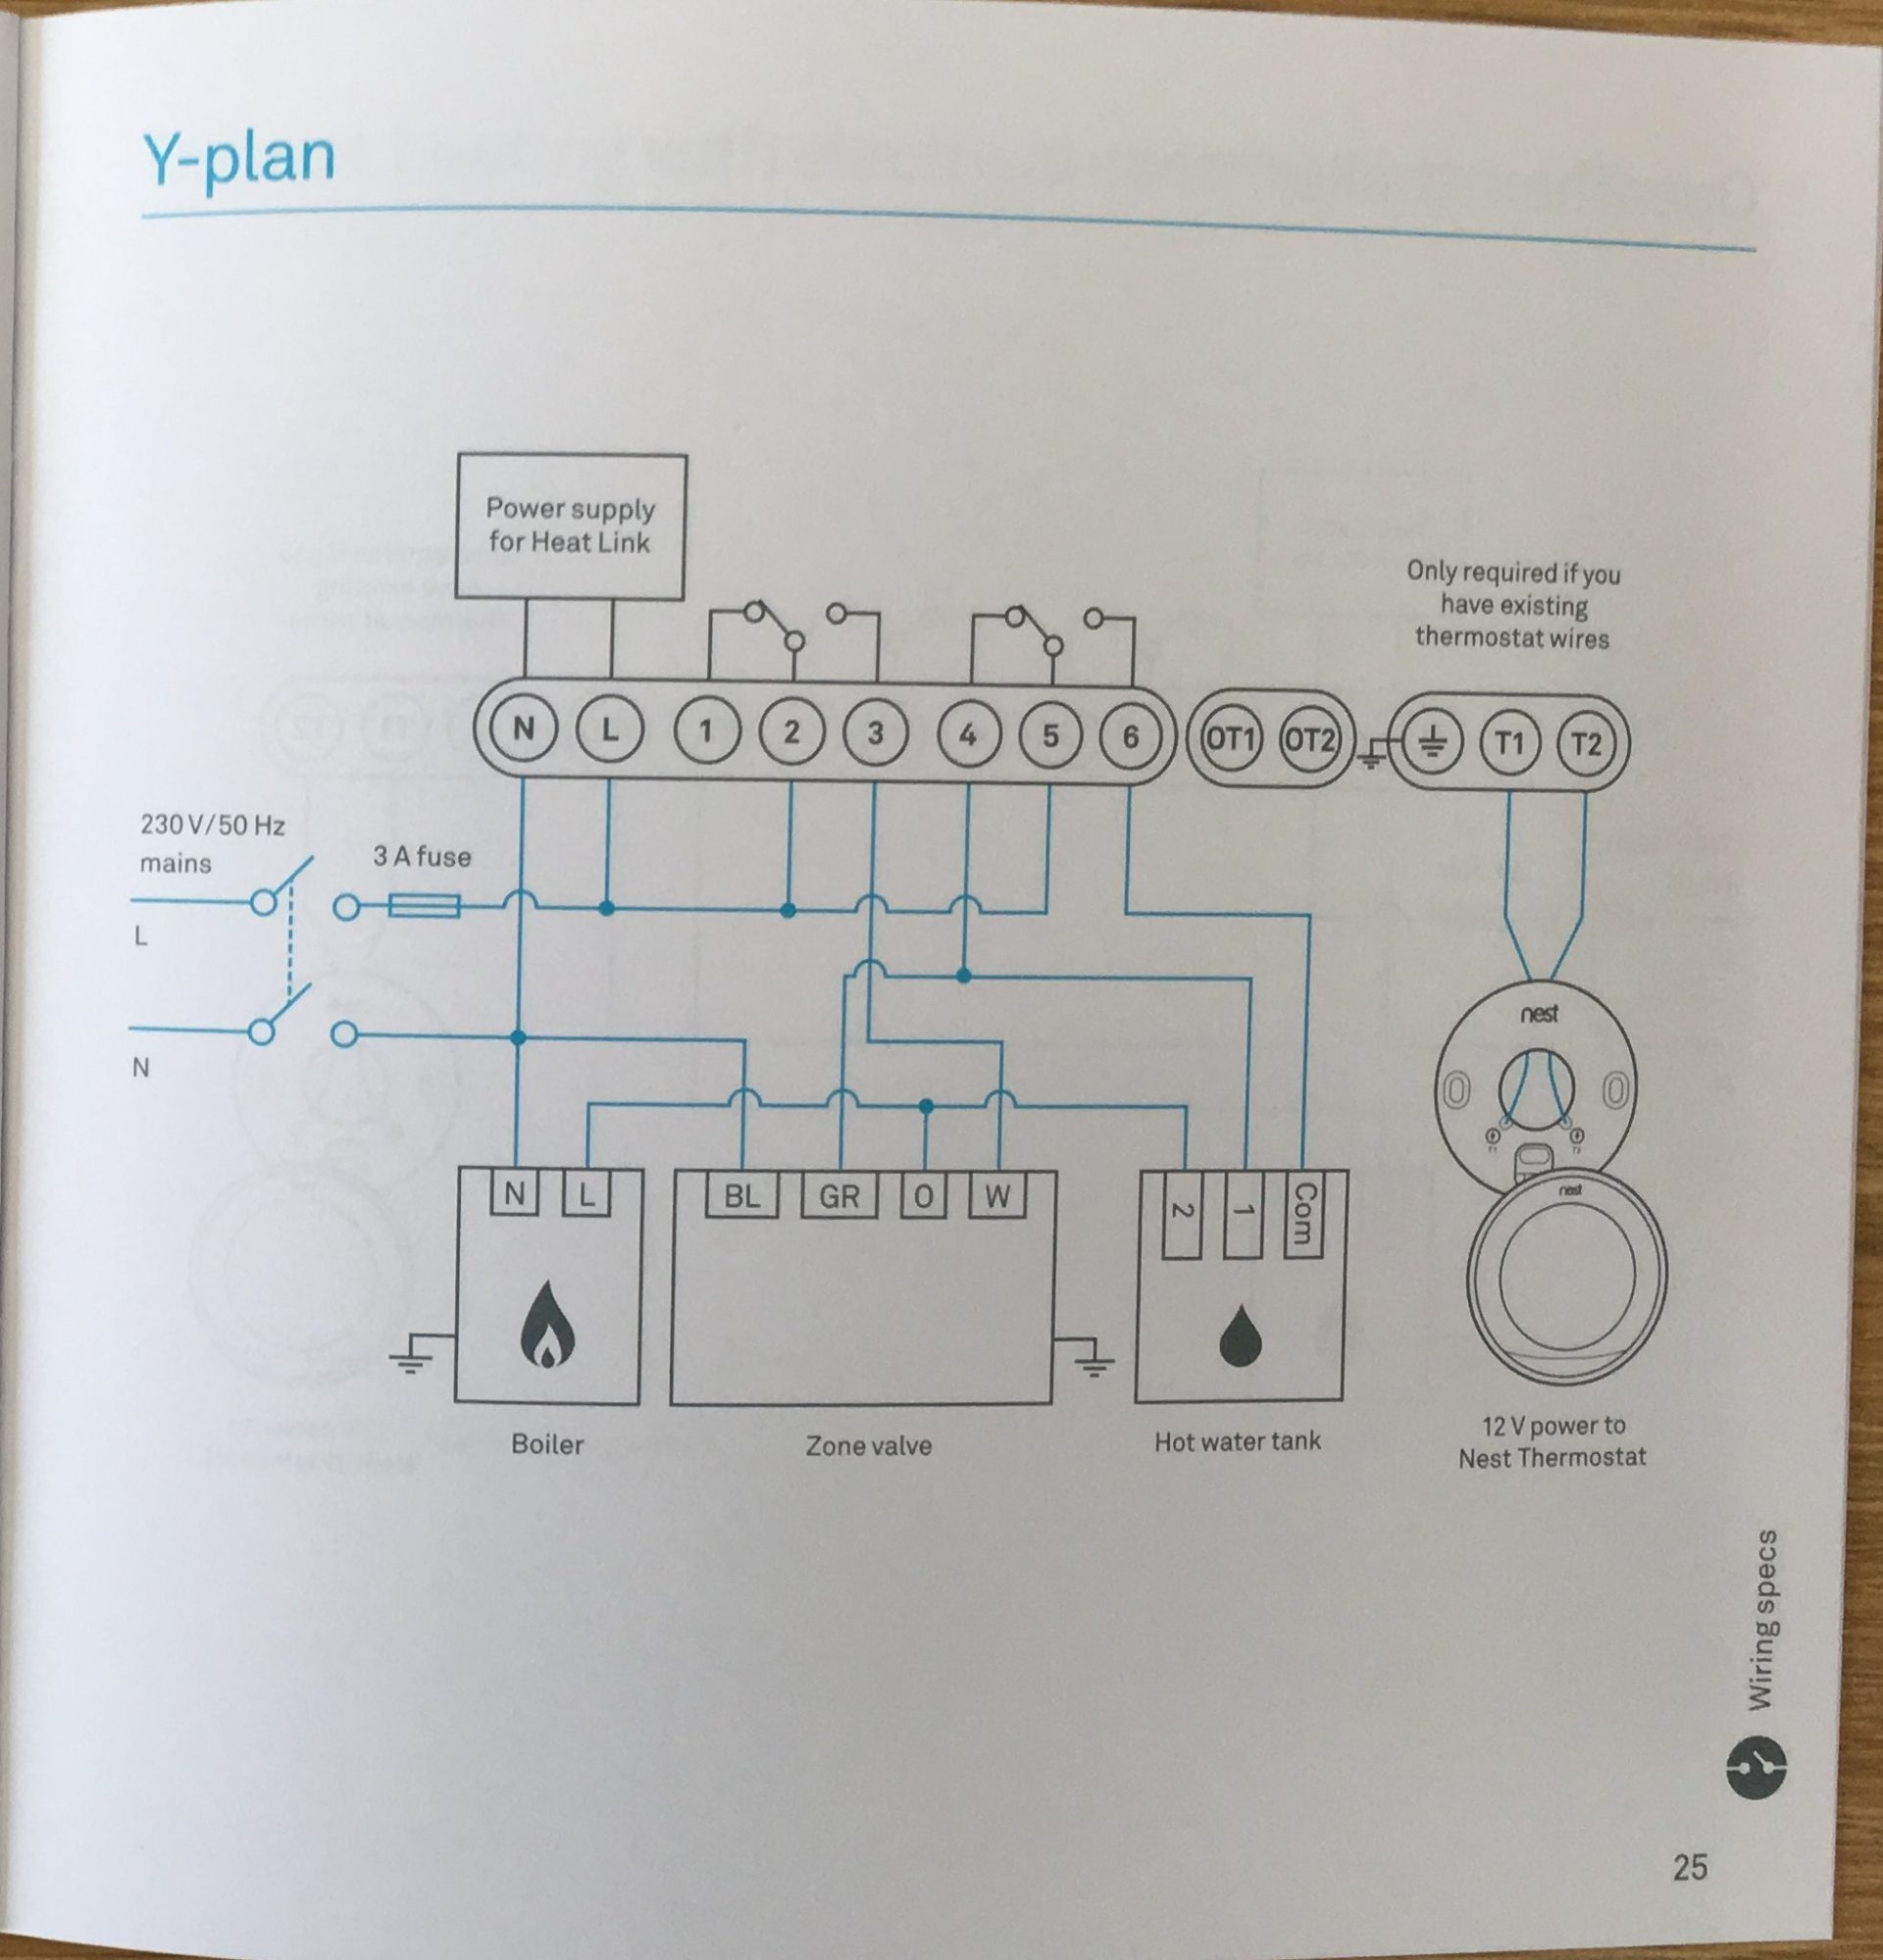 How To Install The Nest Learning Thermostat (3Rd Gen) In A Y-Plan - Nest 3 Wiring Diagram